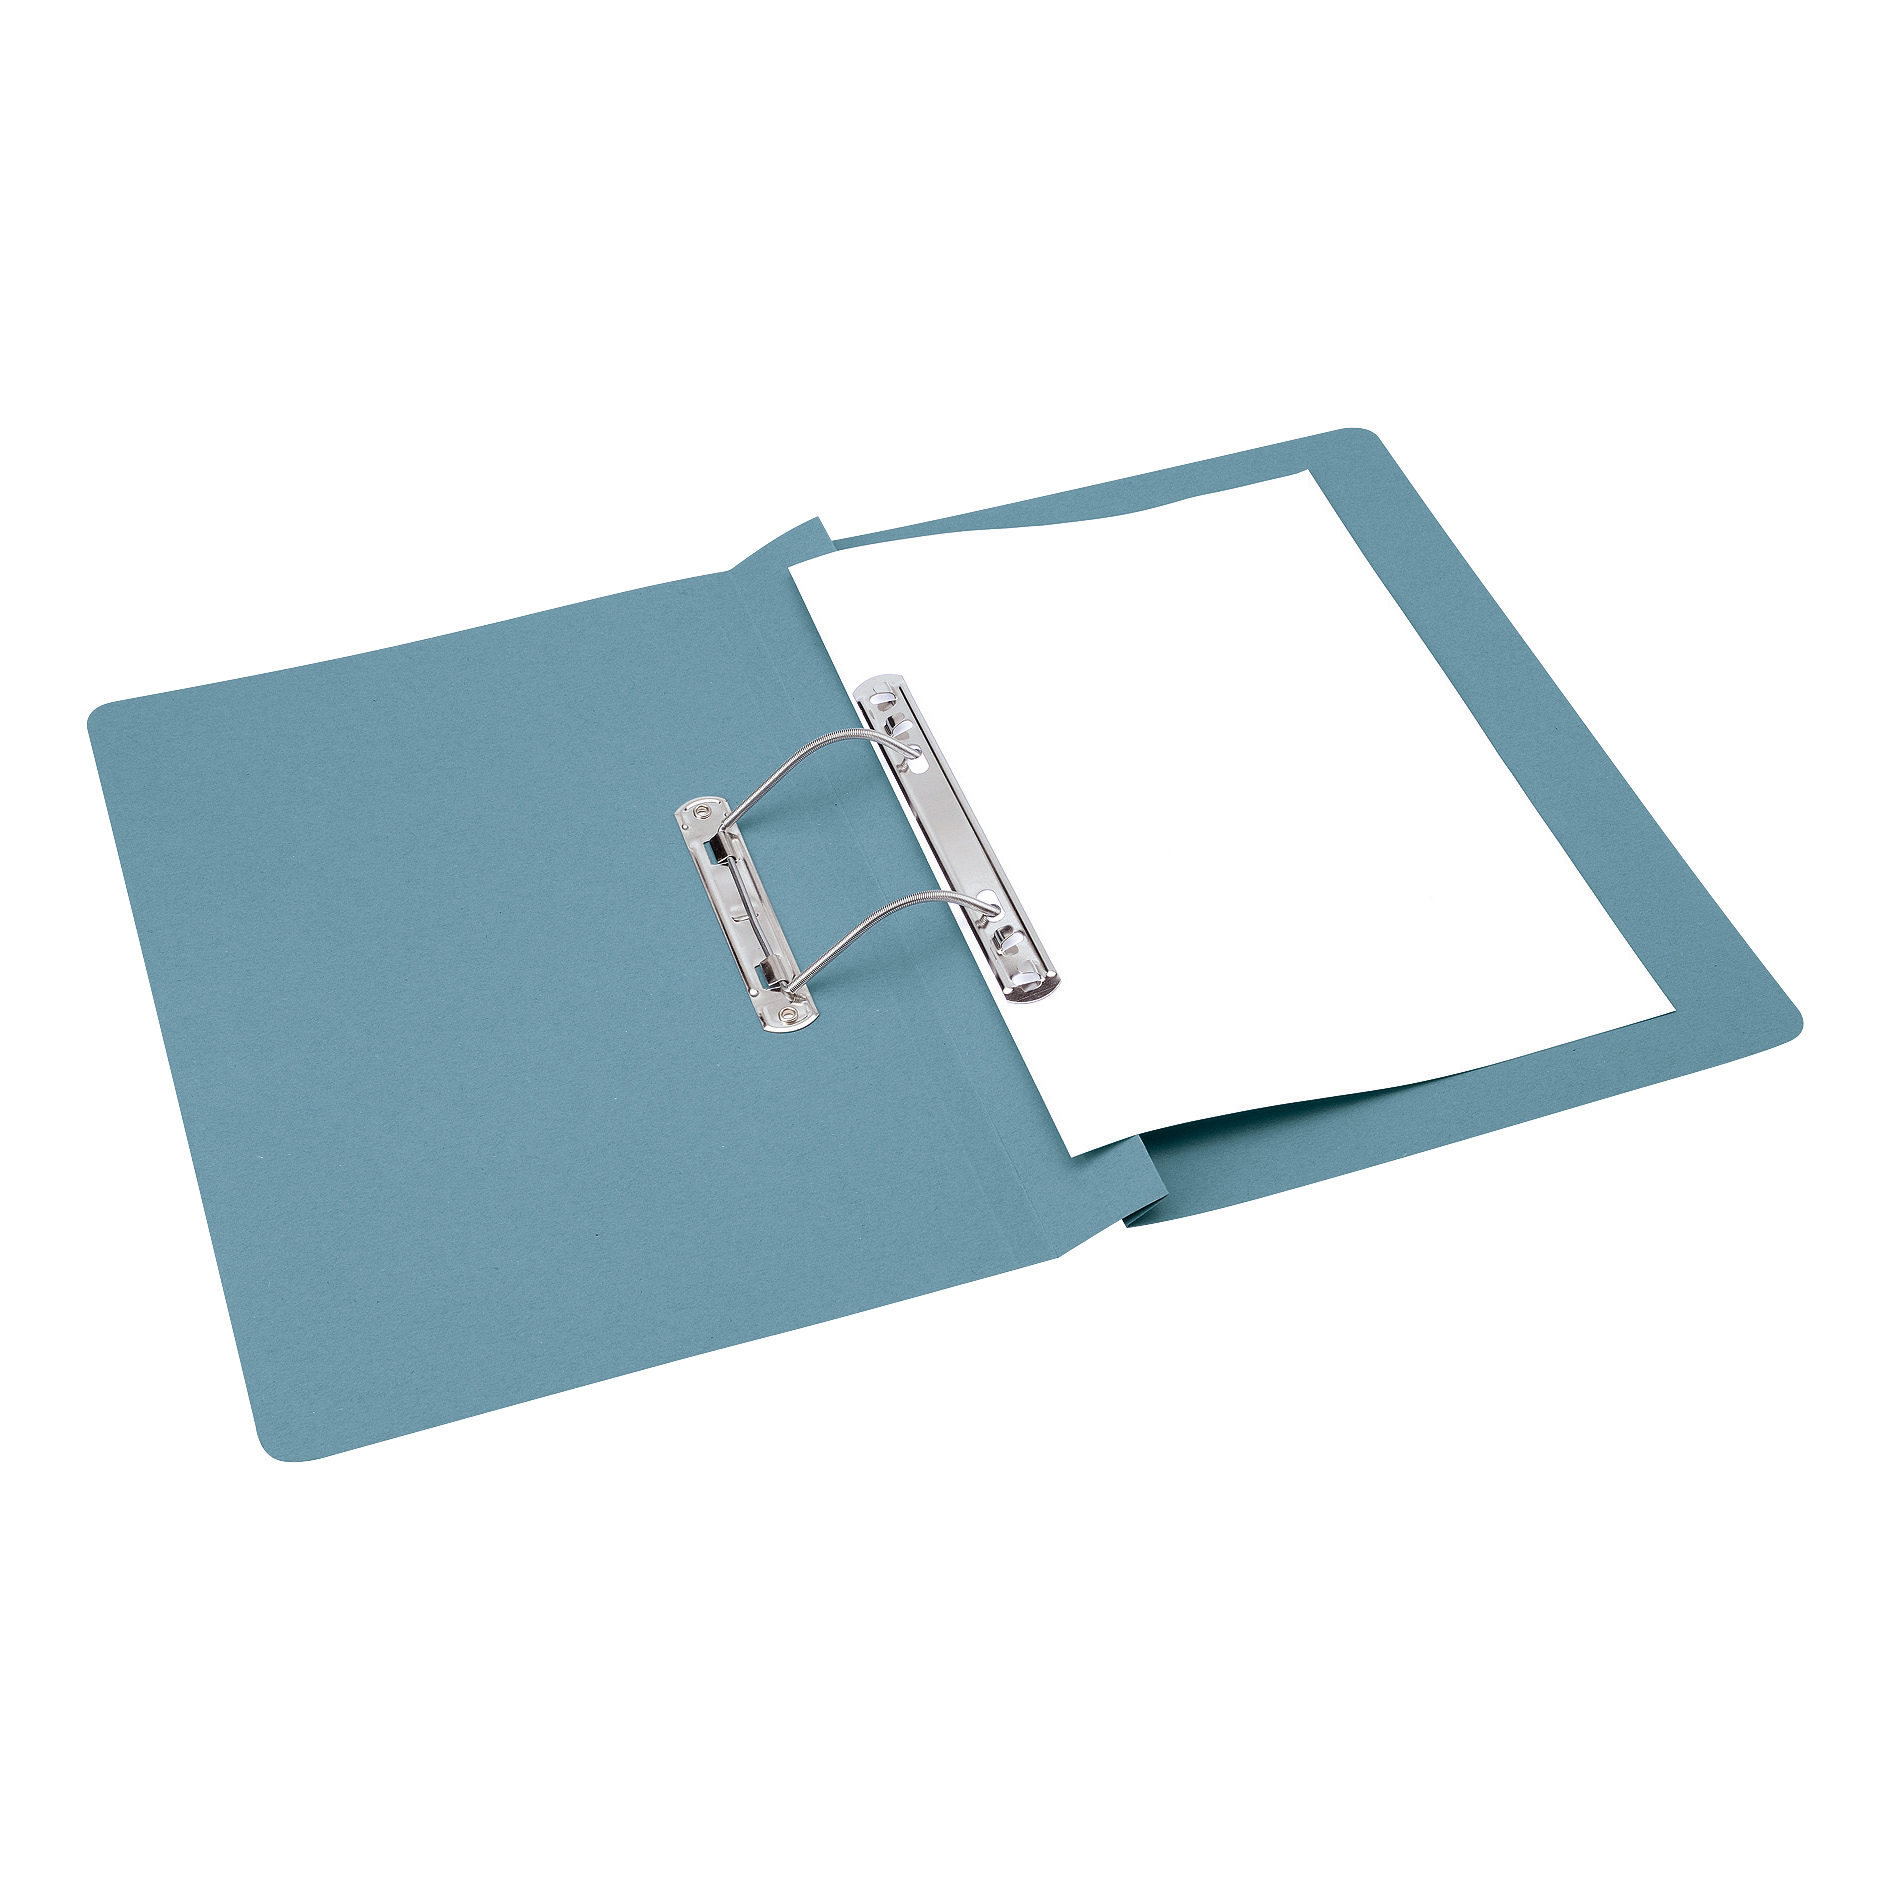 Spring Files 5 Star Office Transfer Spring File Mediumweight 285gsm Capacity 38mm Foolscap Blue Pack 50